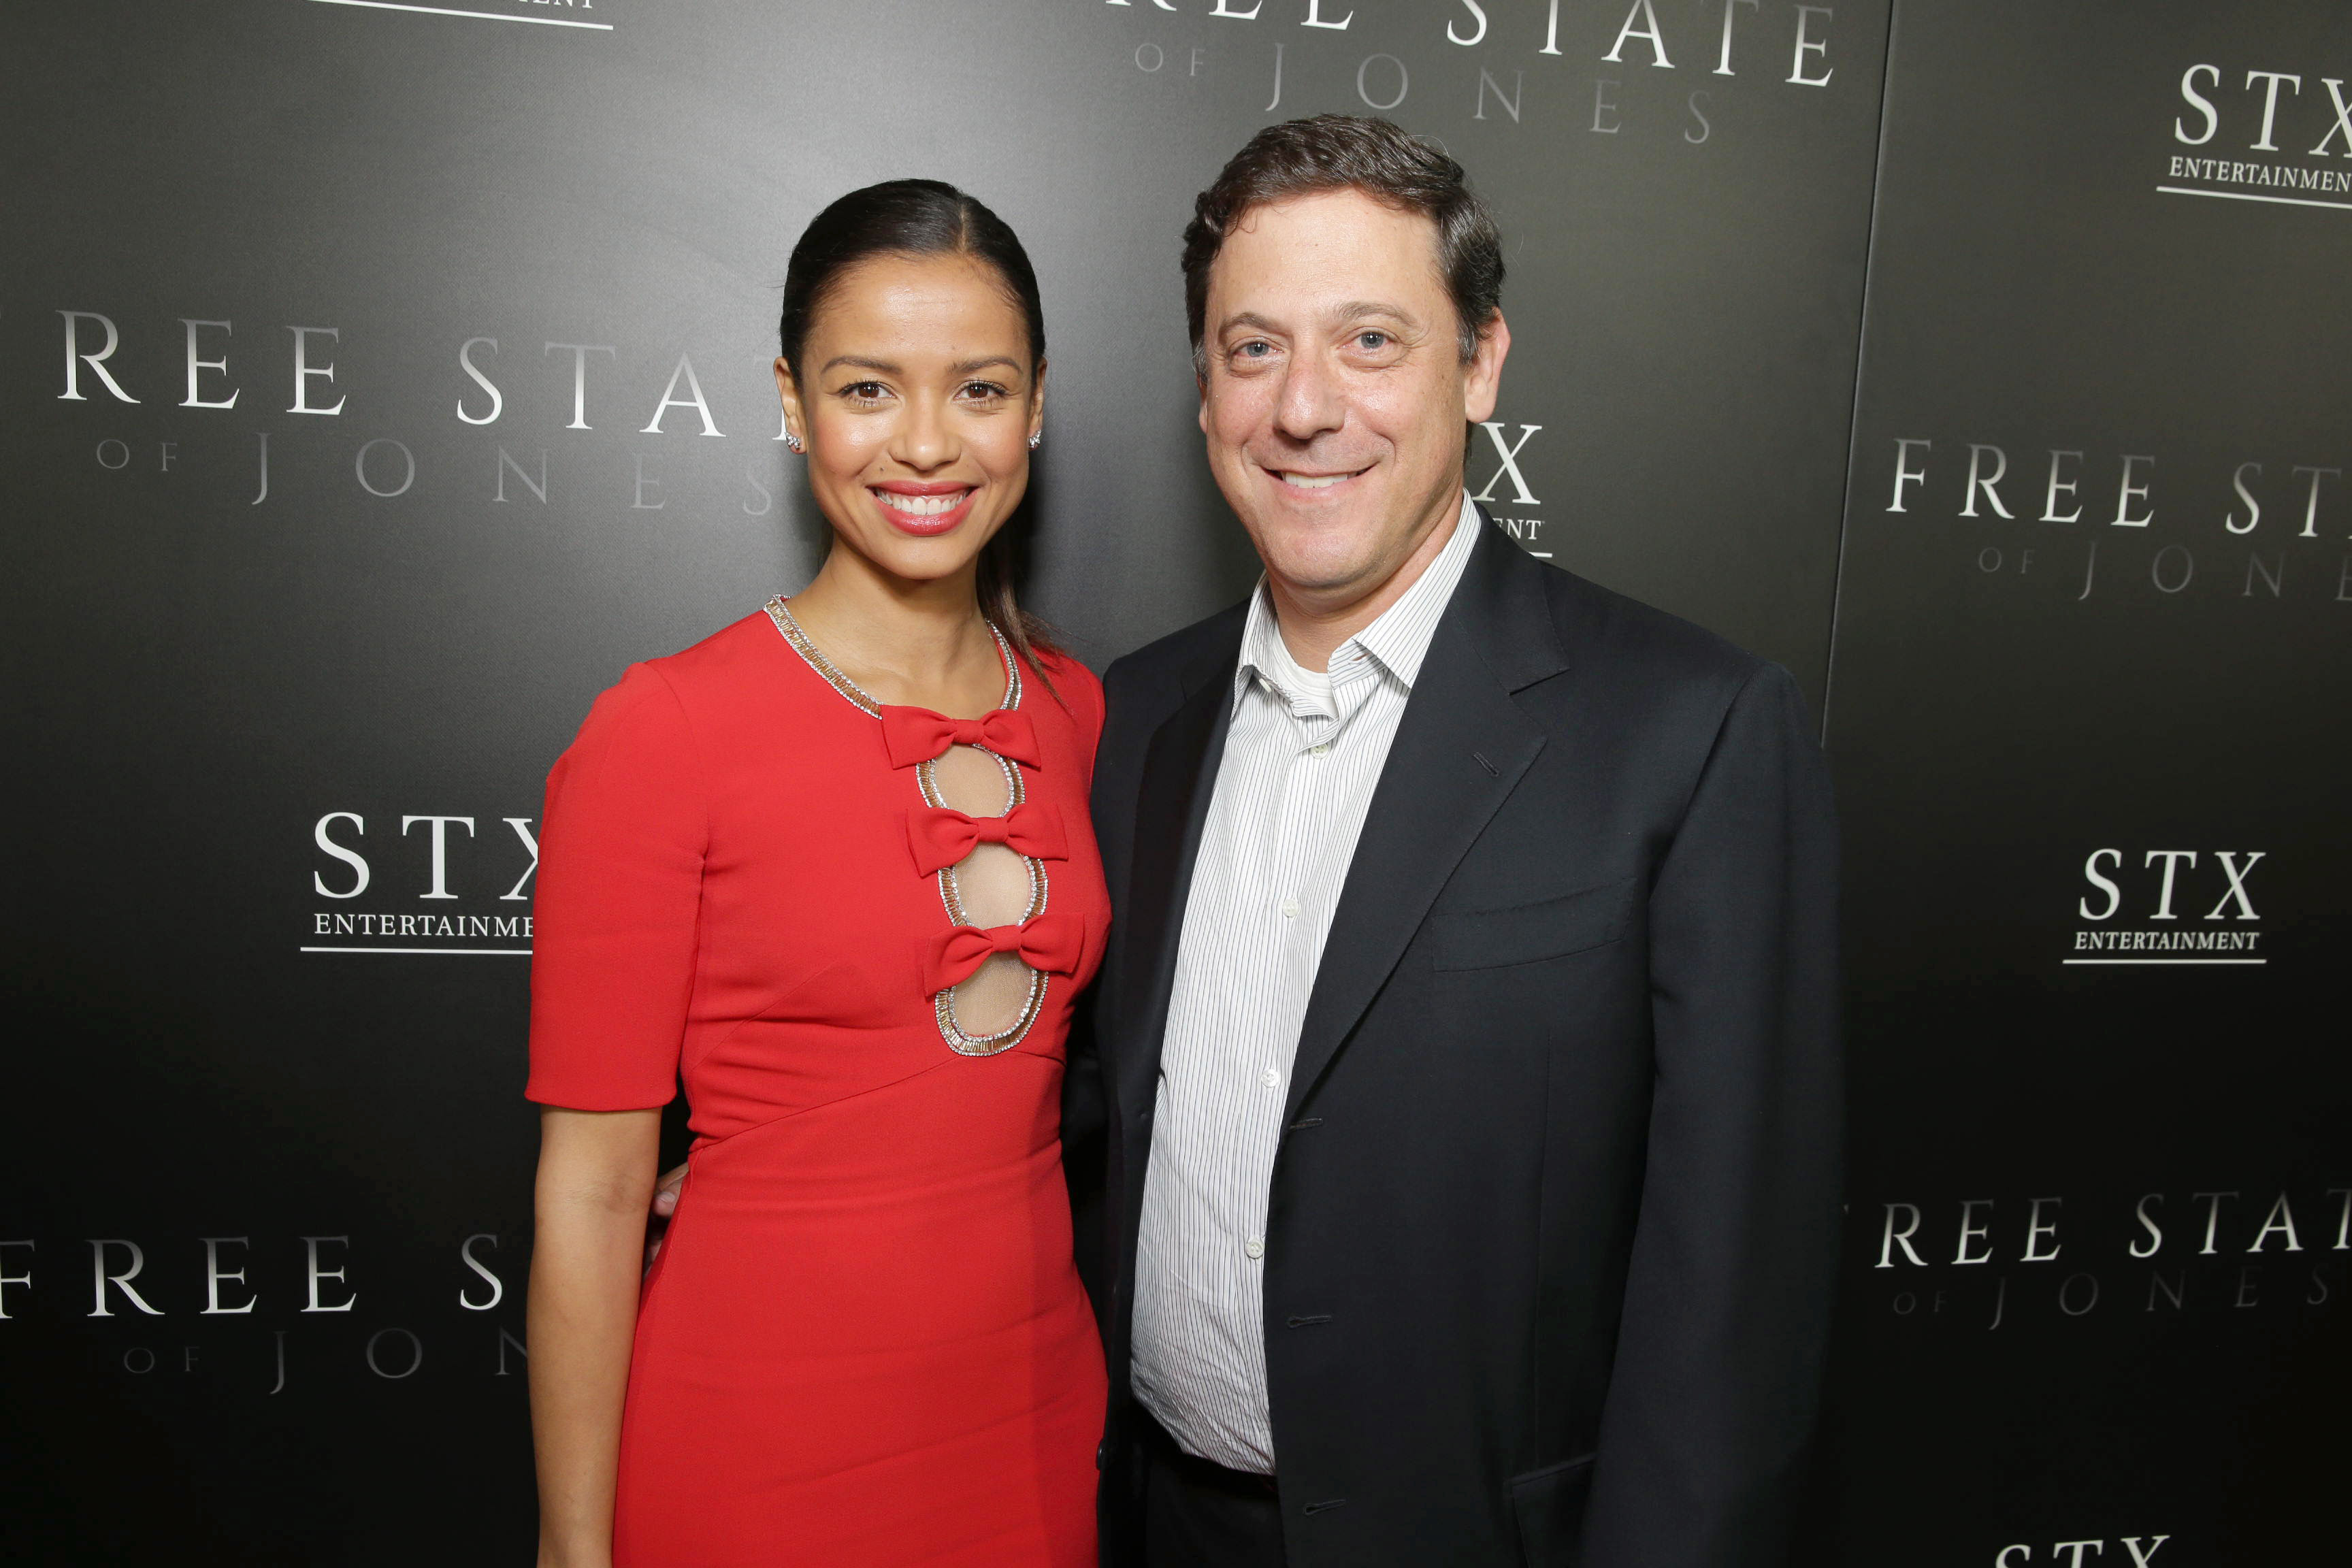 "Gugu Mbatha-Raw and Adam Fogelson, Chairman, Motion Picture Group at STX Entertainment, seen at Los Angeles Premiere of STX Entertainment ""Free State of Jones"" at DGA Theater on Tuesday, June 21, 2016, in Los Angeles. (Photo by Eric Charbonneau/Invision for STX Entertainment/AP Images)"